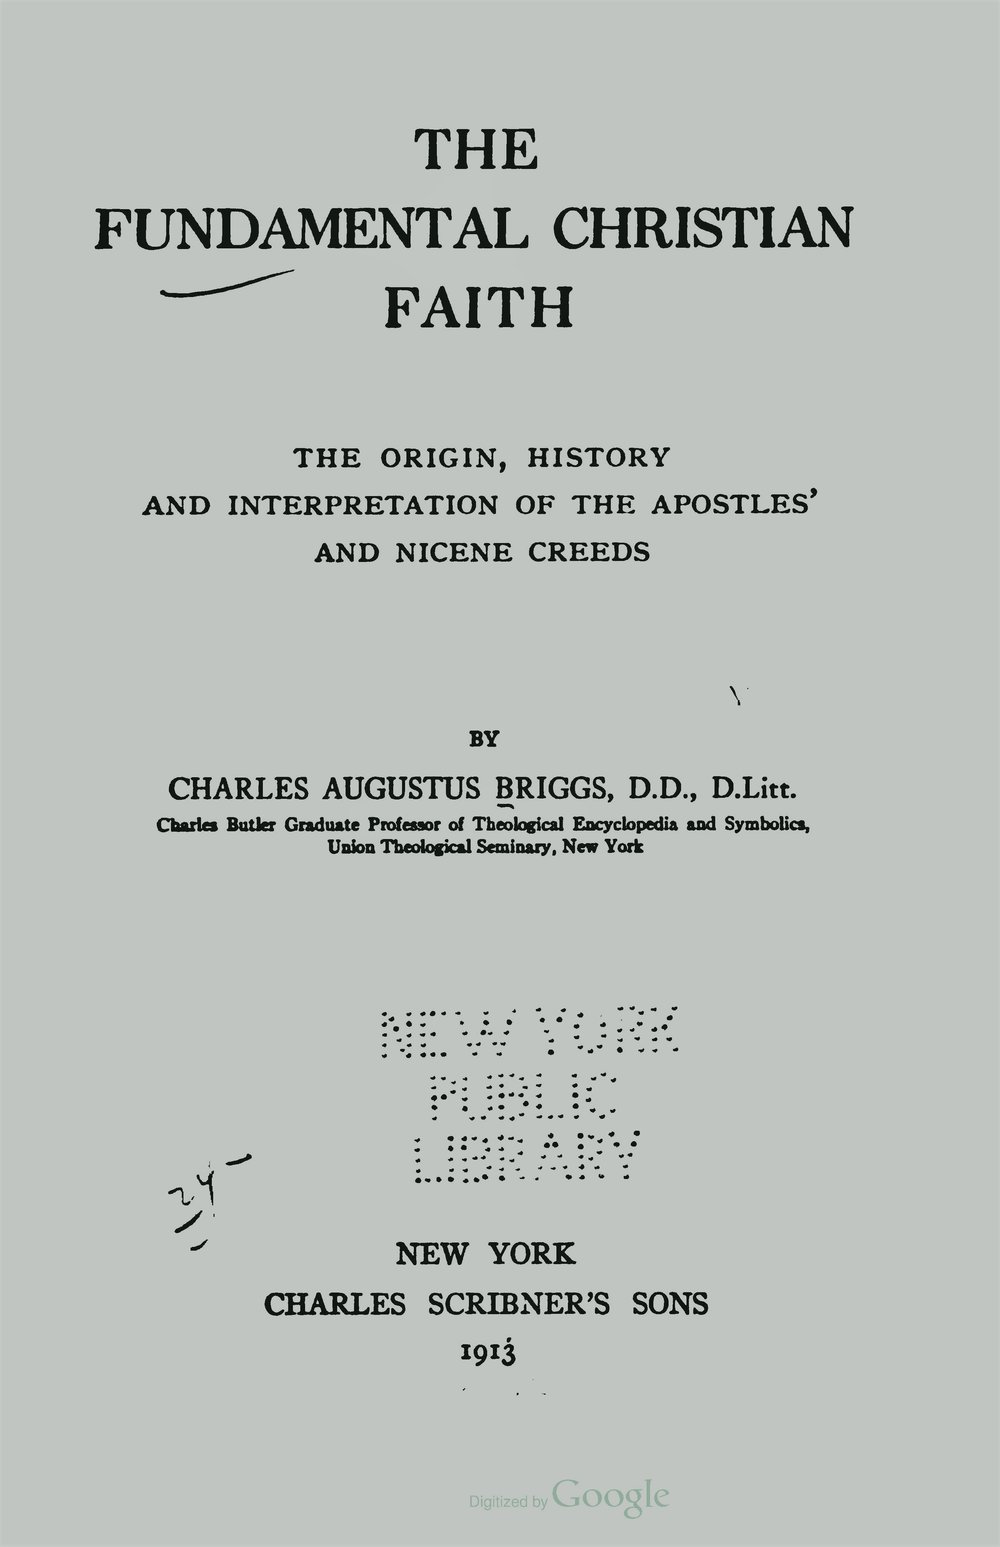 Briggs, Charles Augustus, The Fundamental Christian Faith Title Page.jpg